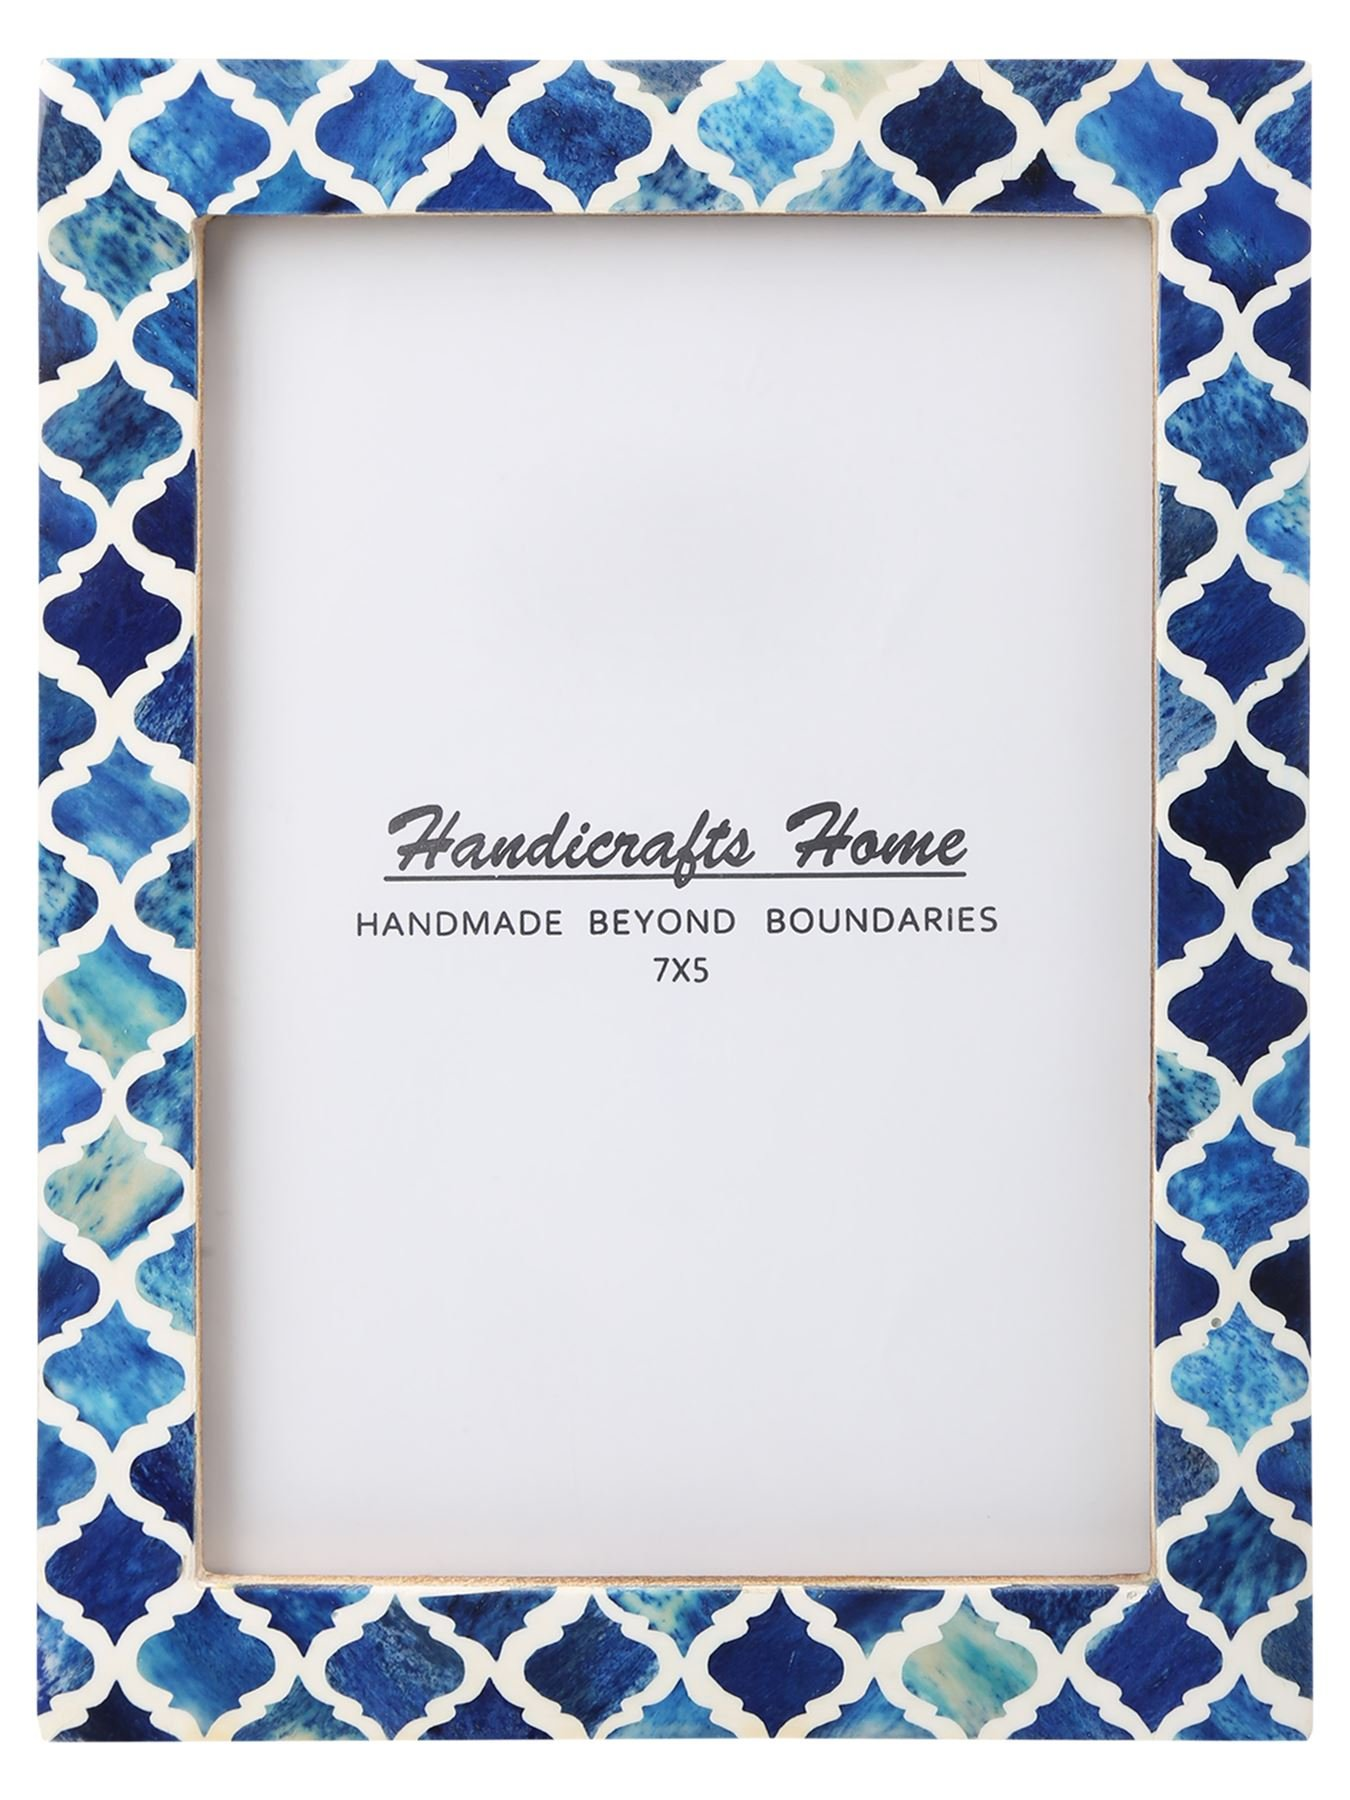 Handicrafts Home 5x7 Picture Photo Frame Moorish Damask Moroccan Art Inspired Vintage Wall Décor Gift Frames [5x7 BLUE]